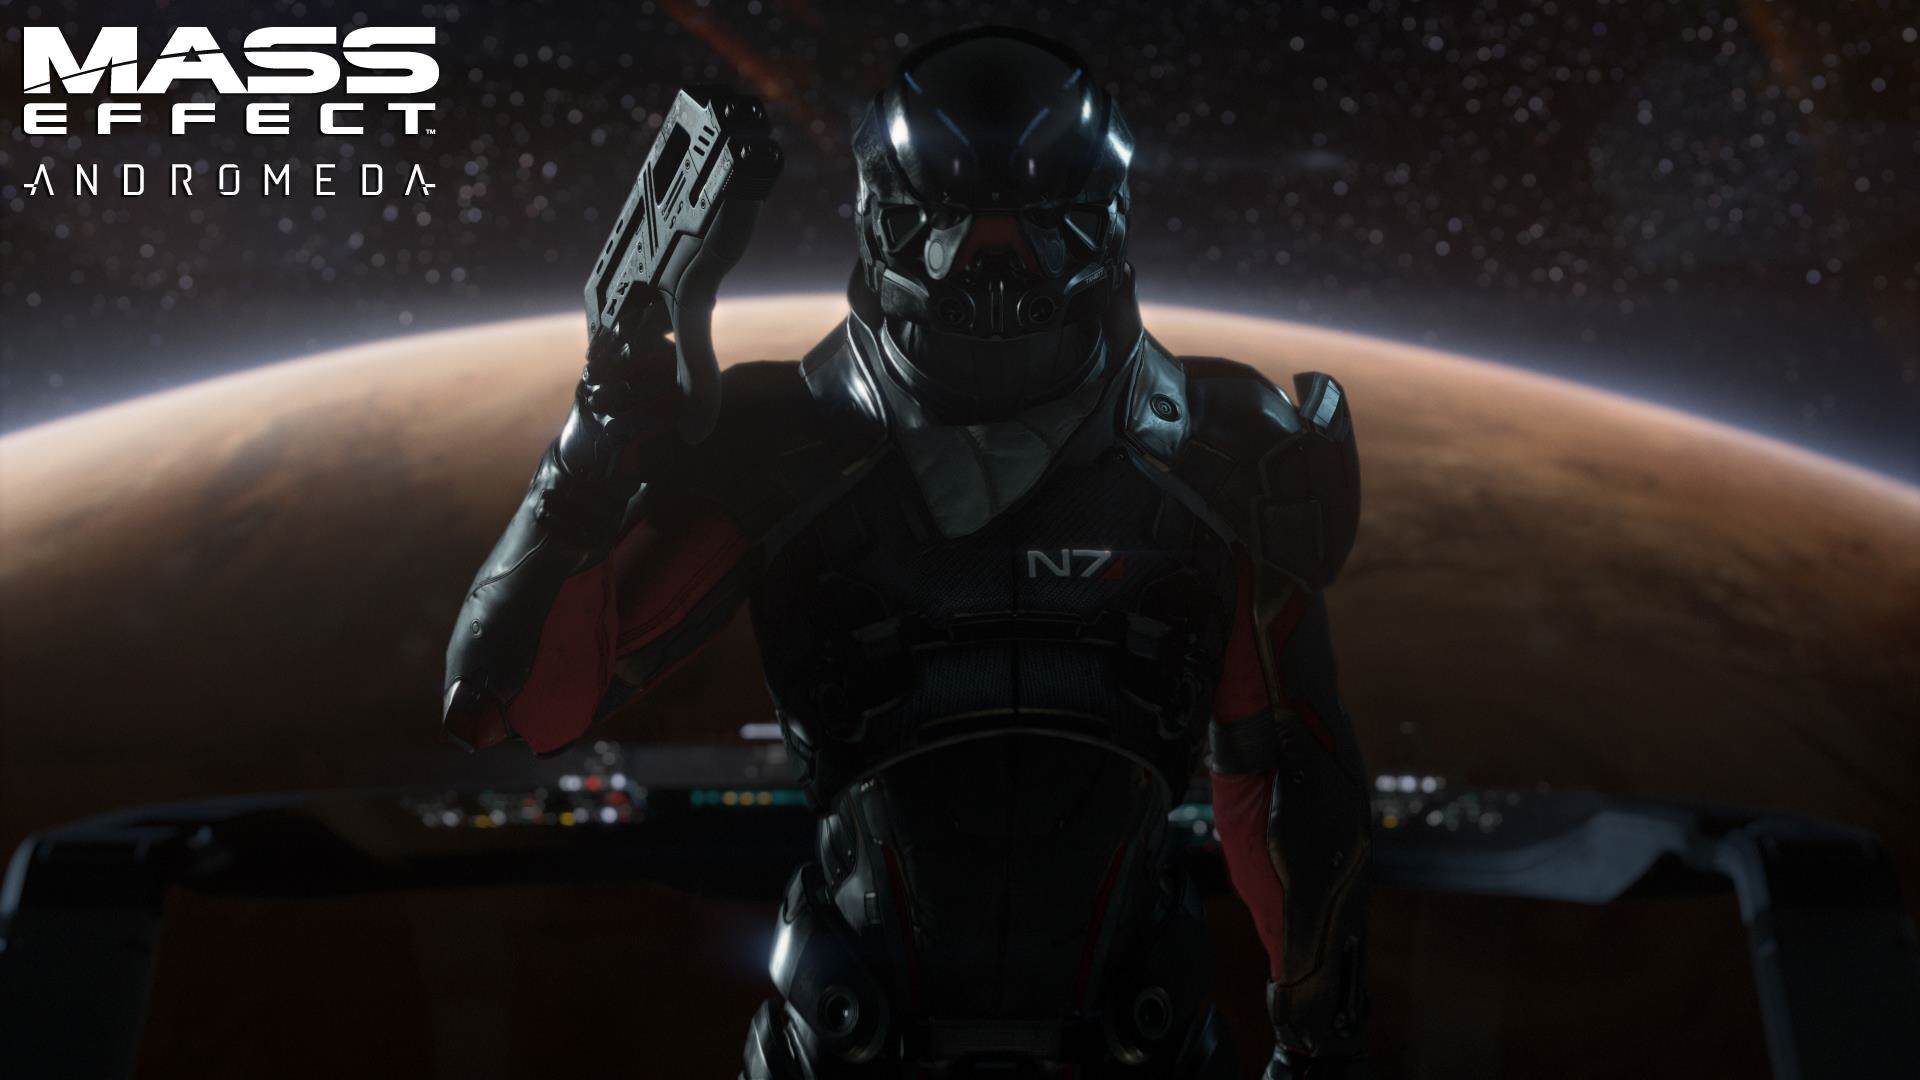 Leaked Mass Effect Andromeda Survey Holds Some Key Details mass effect andromeda e3 trailer 6